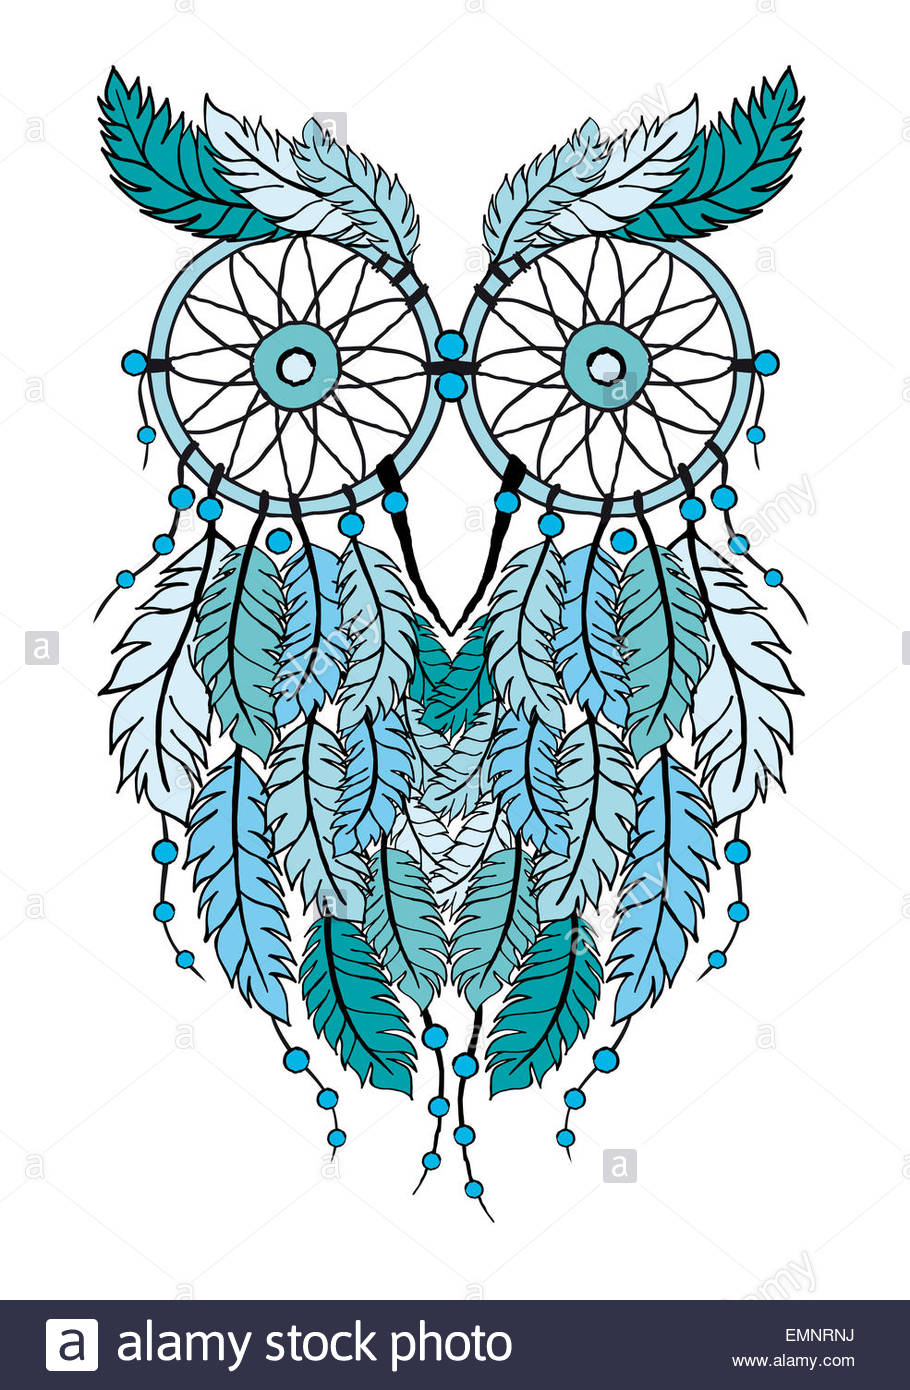 910x1390 Blue Tribal Dream Catcher Owl, Hand Drawn Illustration Stock Photo